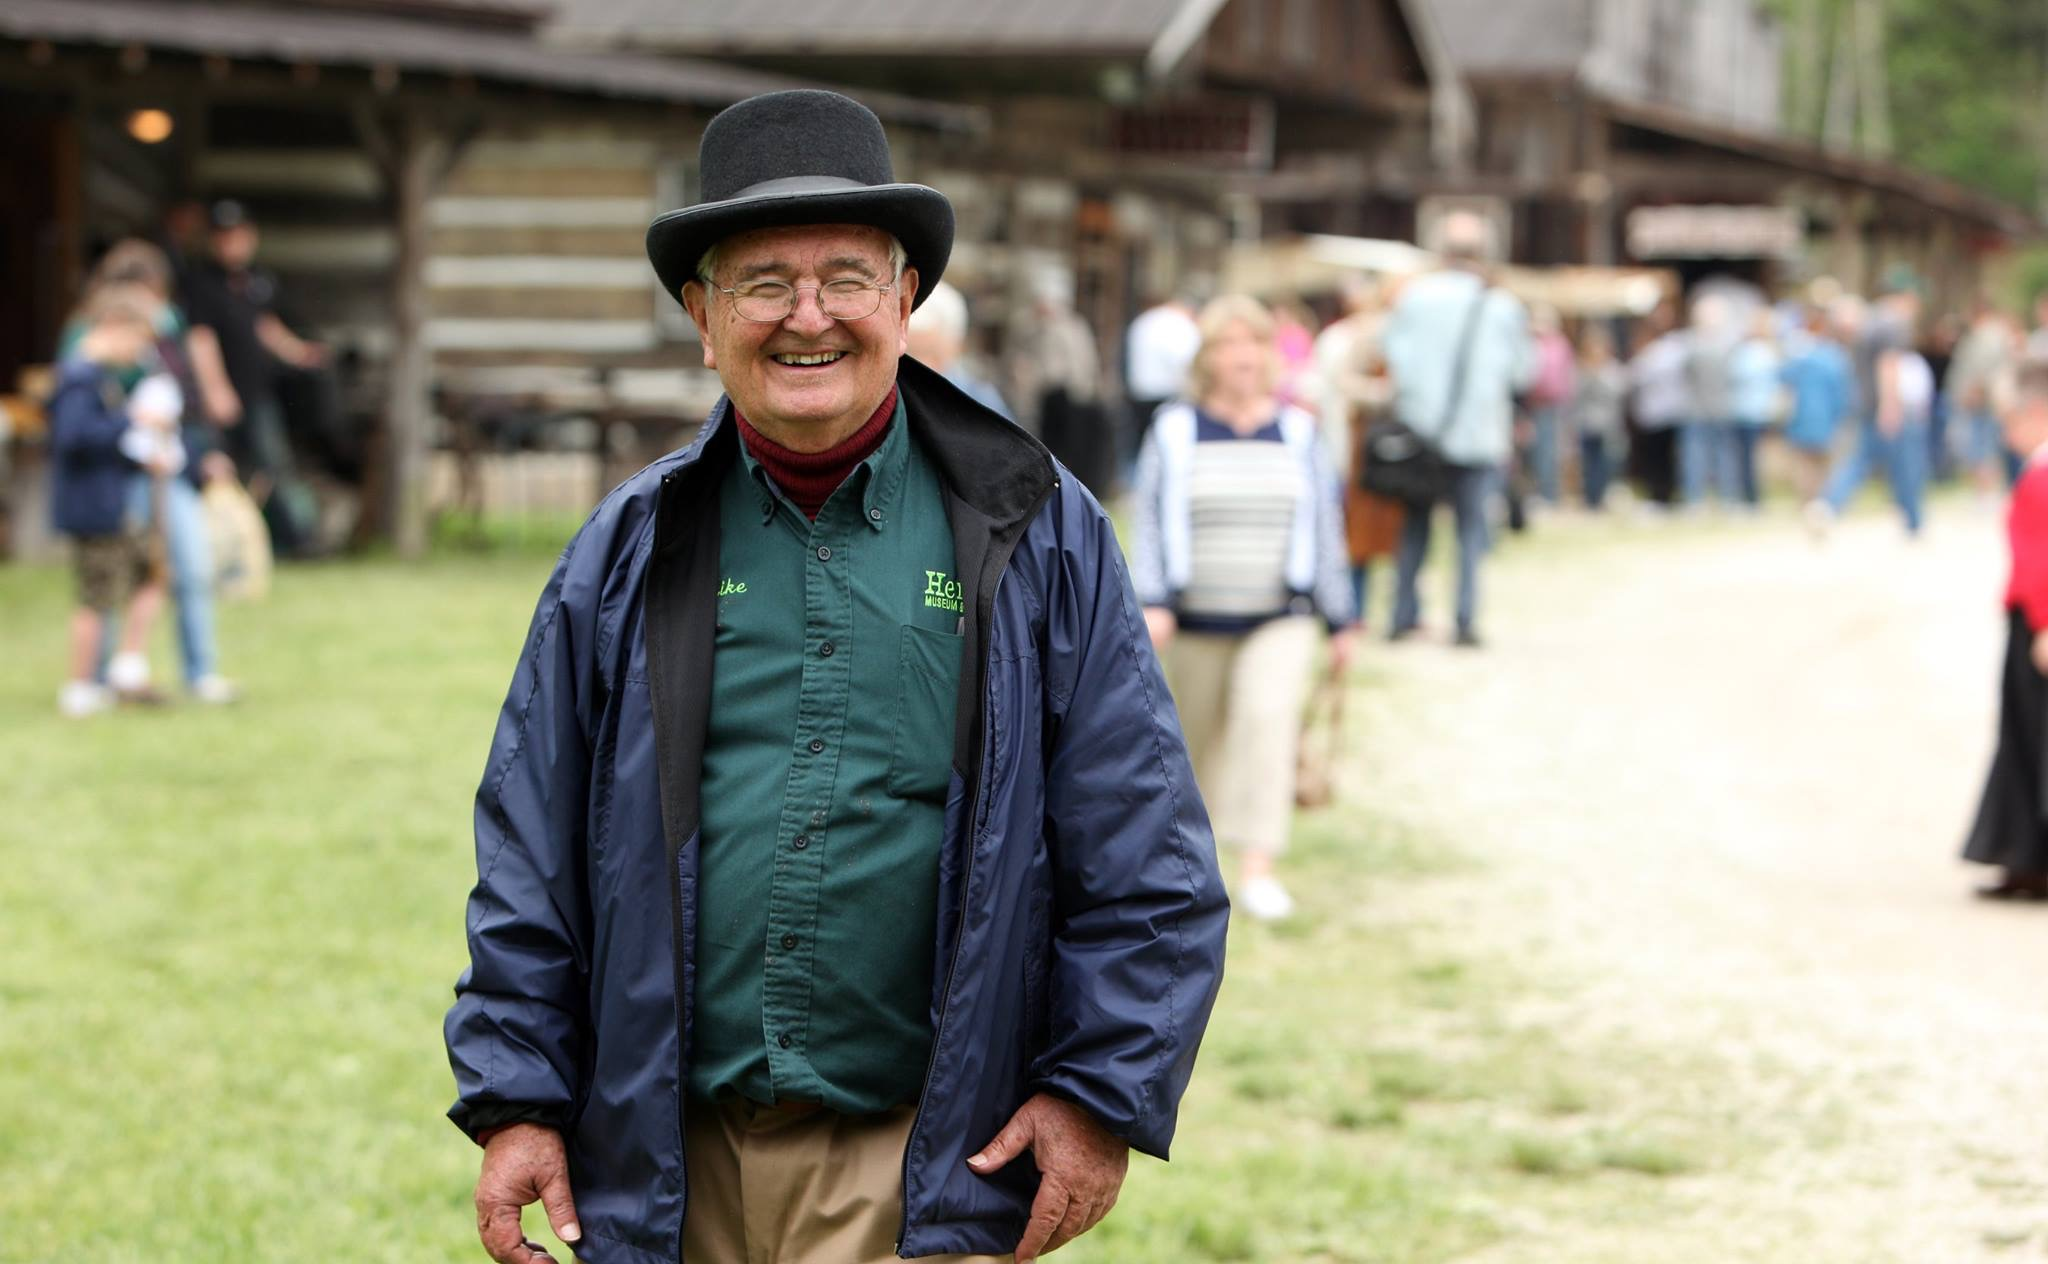 Mike Perry's vision was for Heritage Farm to inspire people to work towards a better future by being as creative and hardworking as their pioneer ancestors.